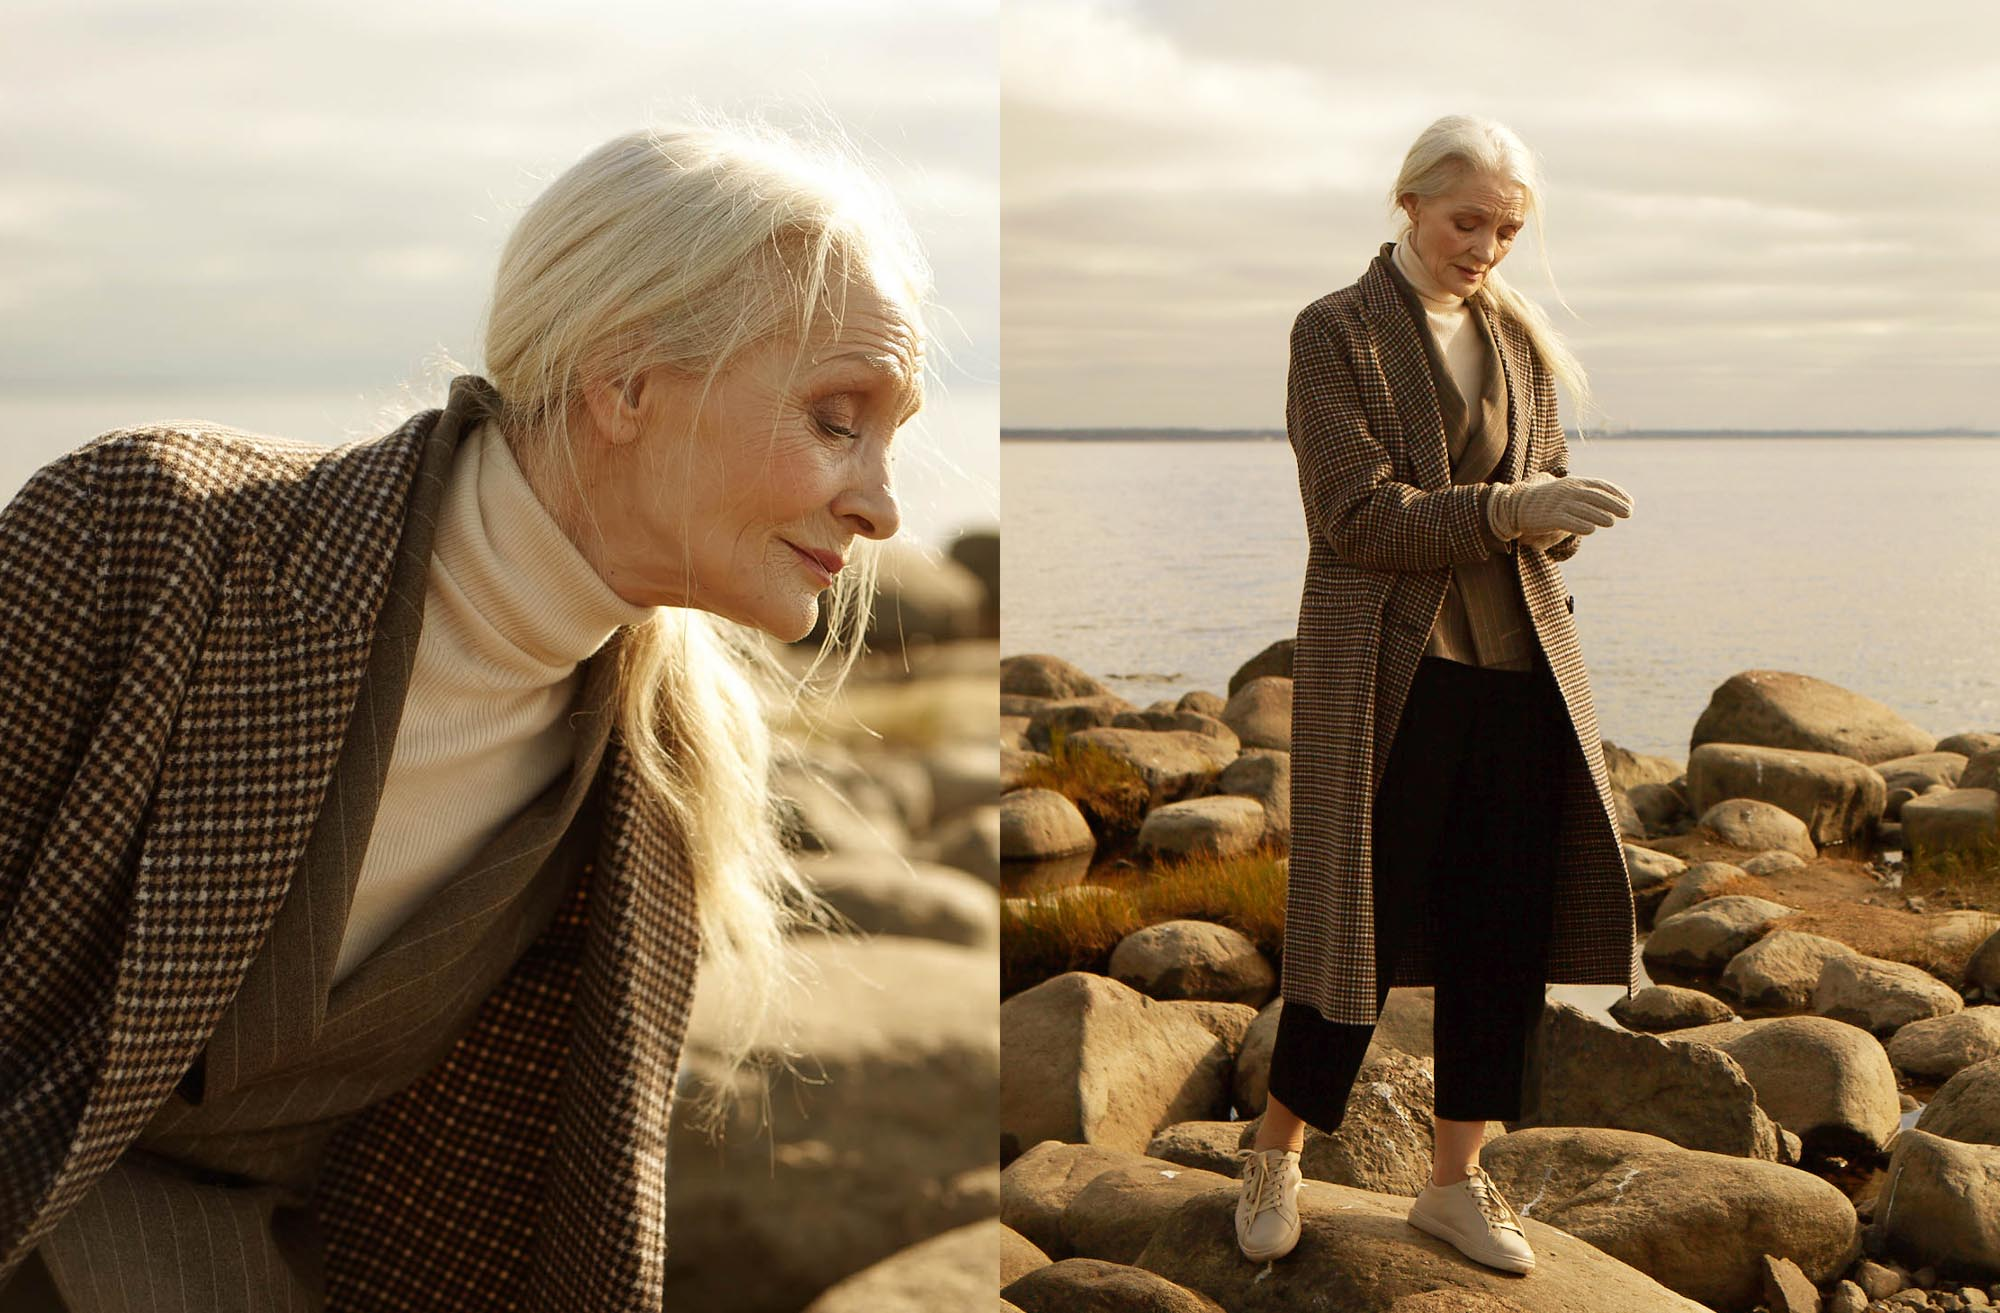 Meet the 62-year-old muse of Russian label 12Storeez's new lookbook